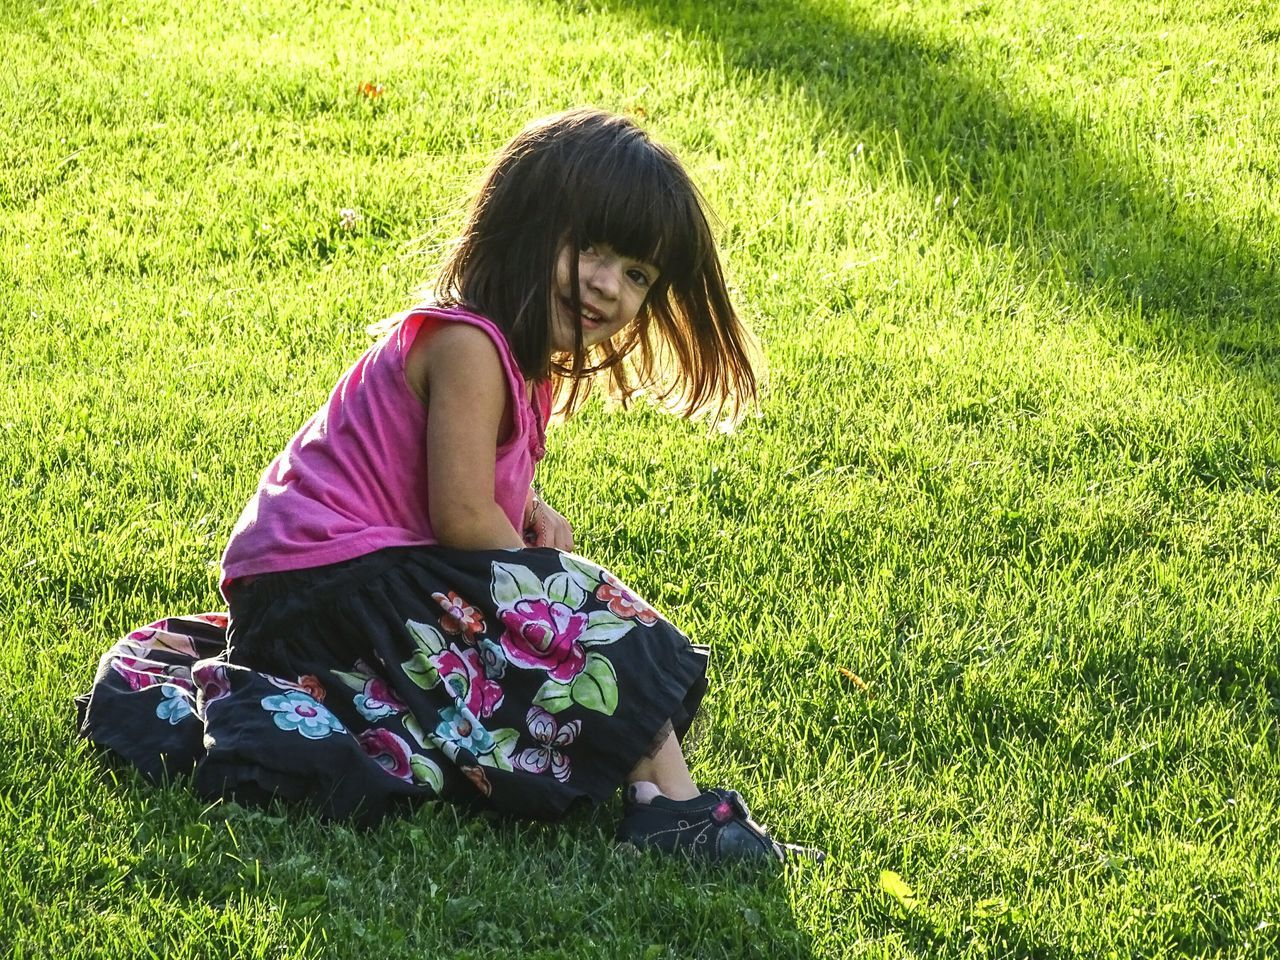 My Sweet Little Niece. Grass Field Green Color Casual Clothing Lifestyles Full Length Leisure Activity Grassy Relaxation Person Sitting Childhood Park - Man Made Space Day Innocence Young Adult Holding Outdoors Nature